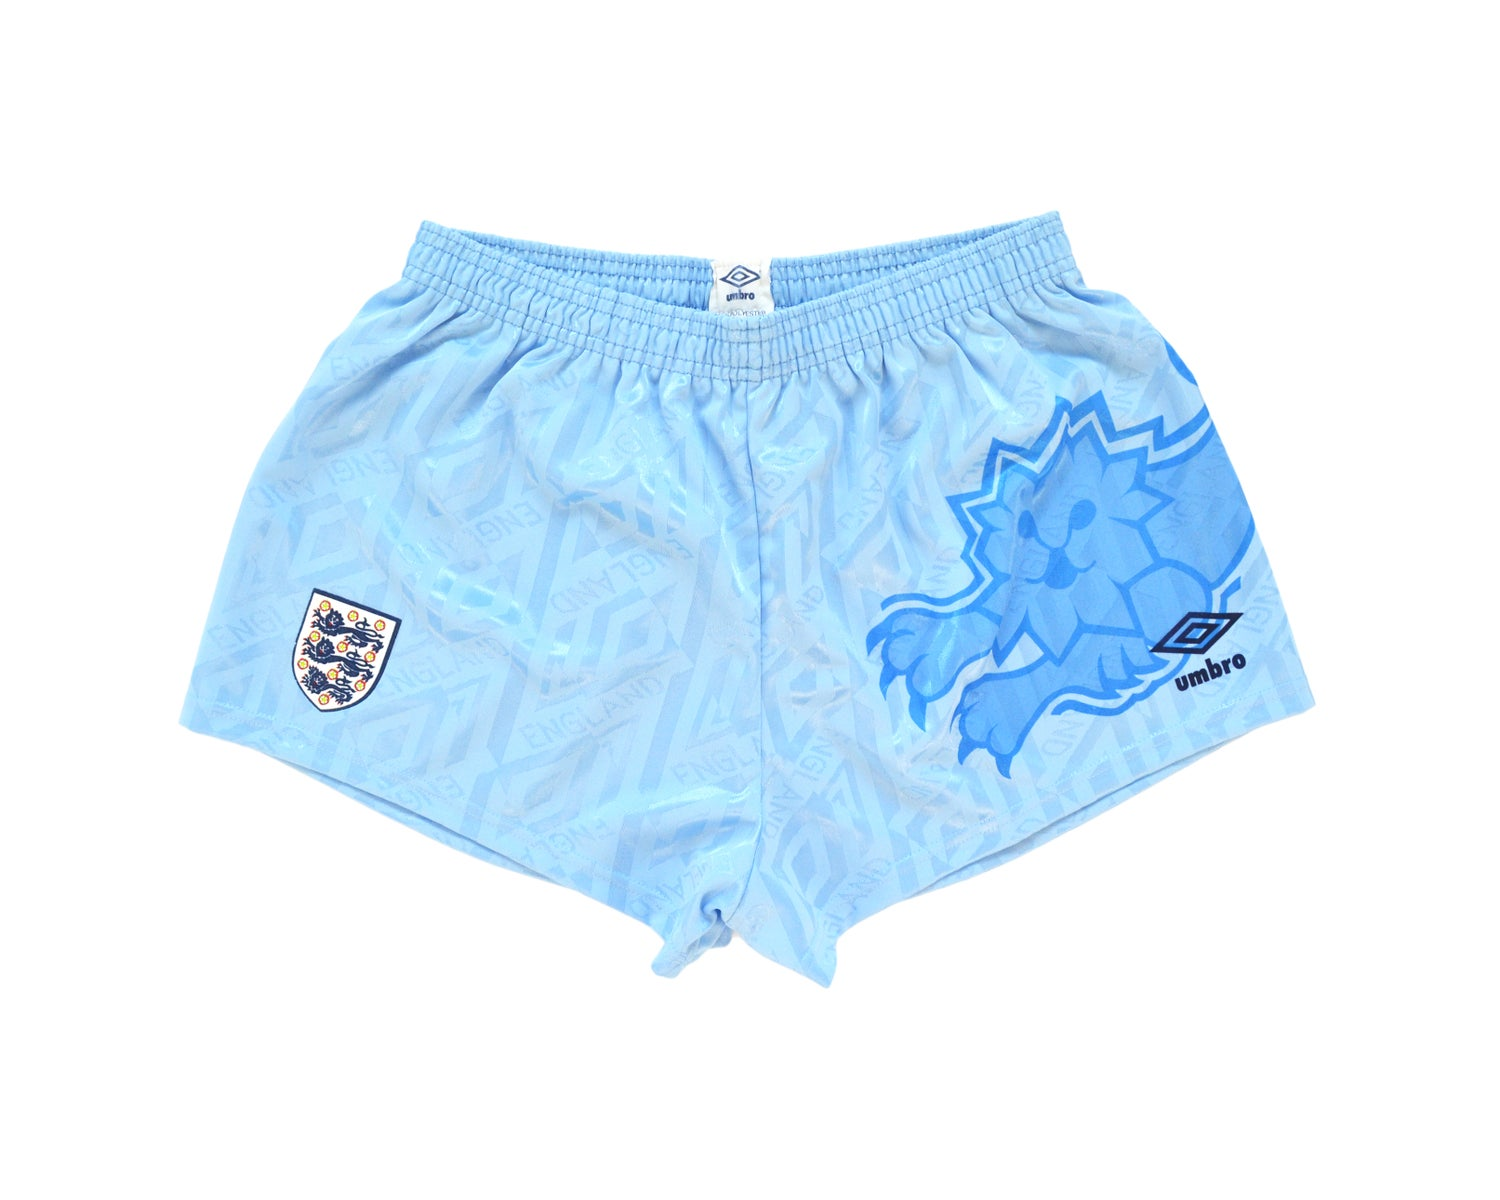 Image of 1992-93 Umbro England Third Shorts (L)